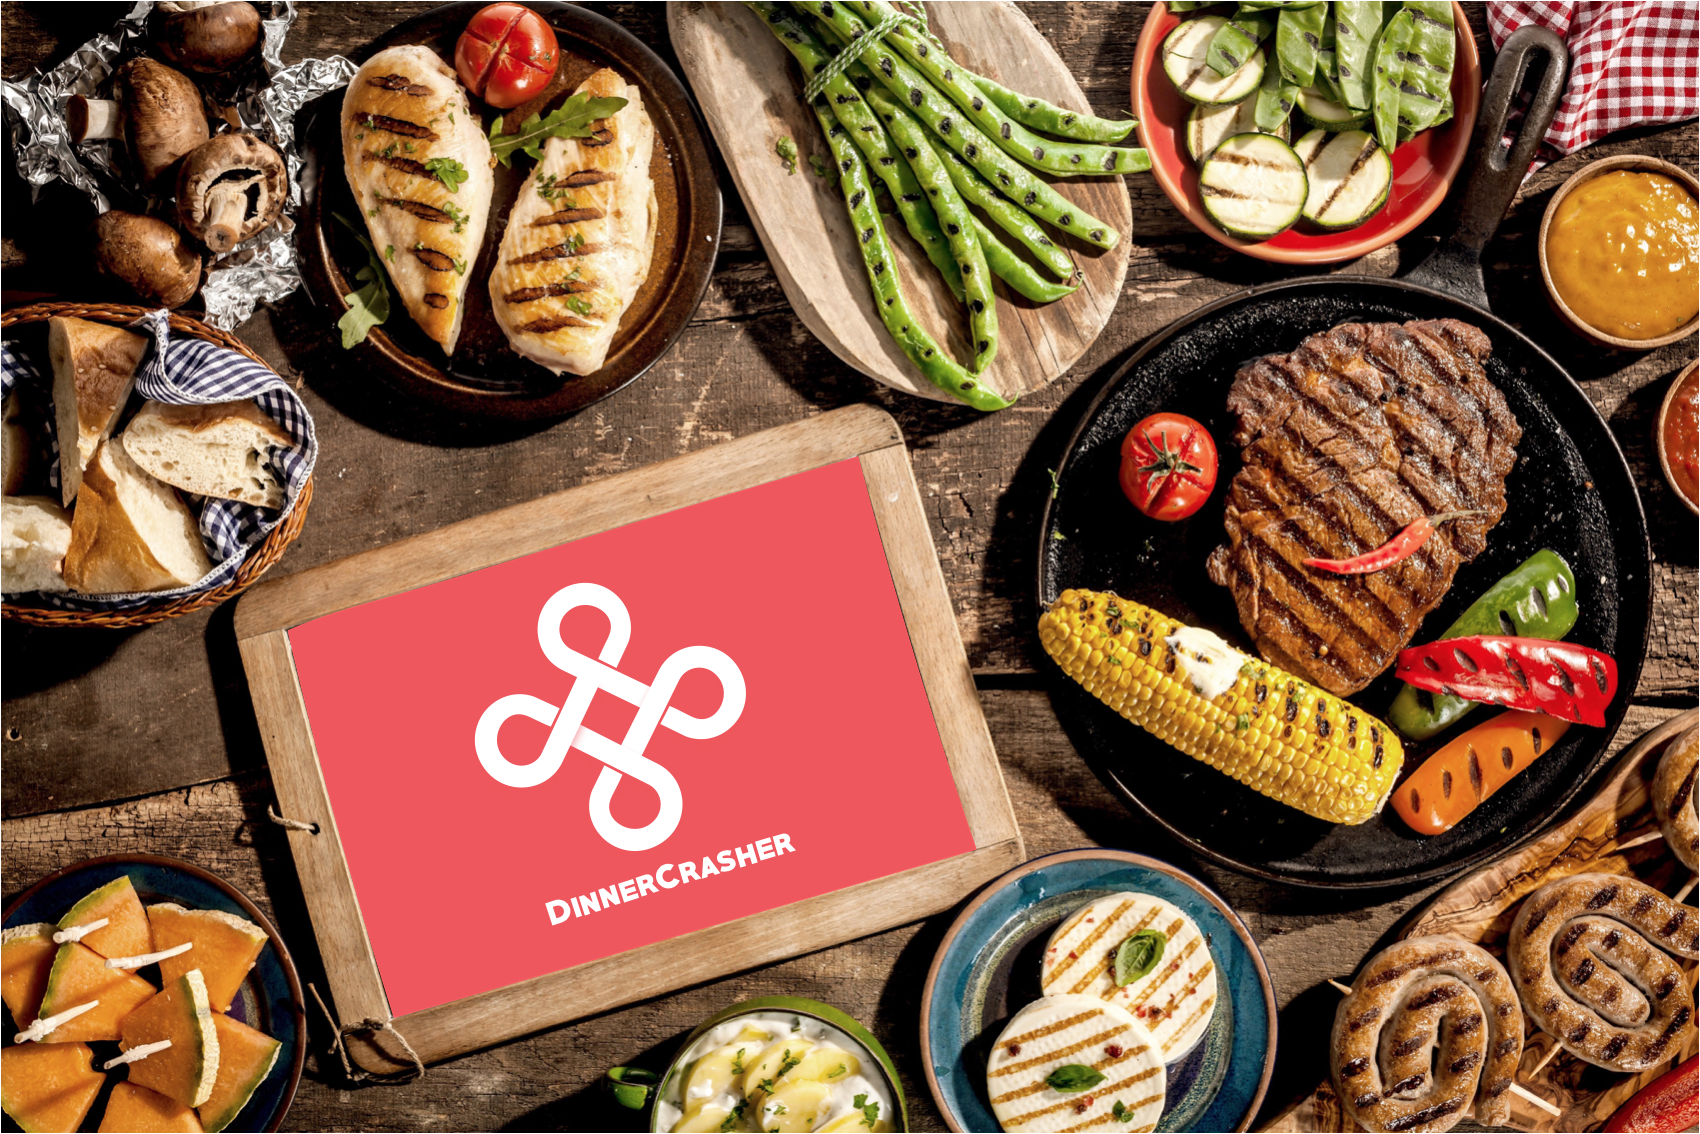 DinnerCrasher.com events